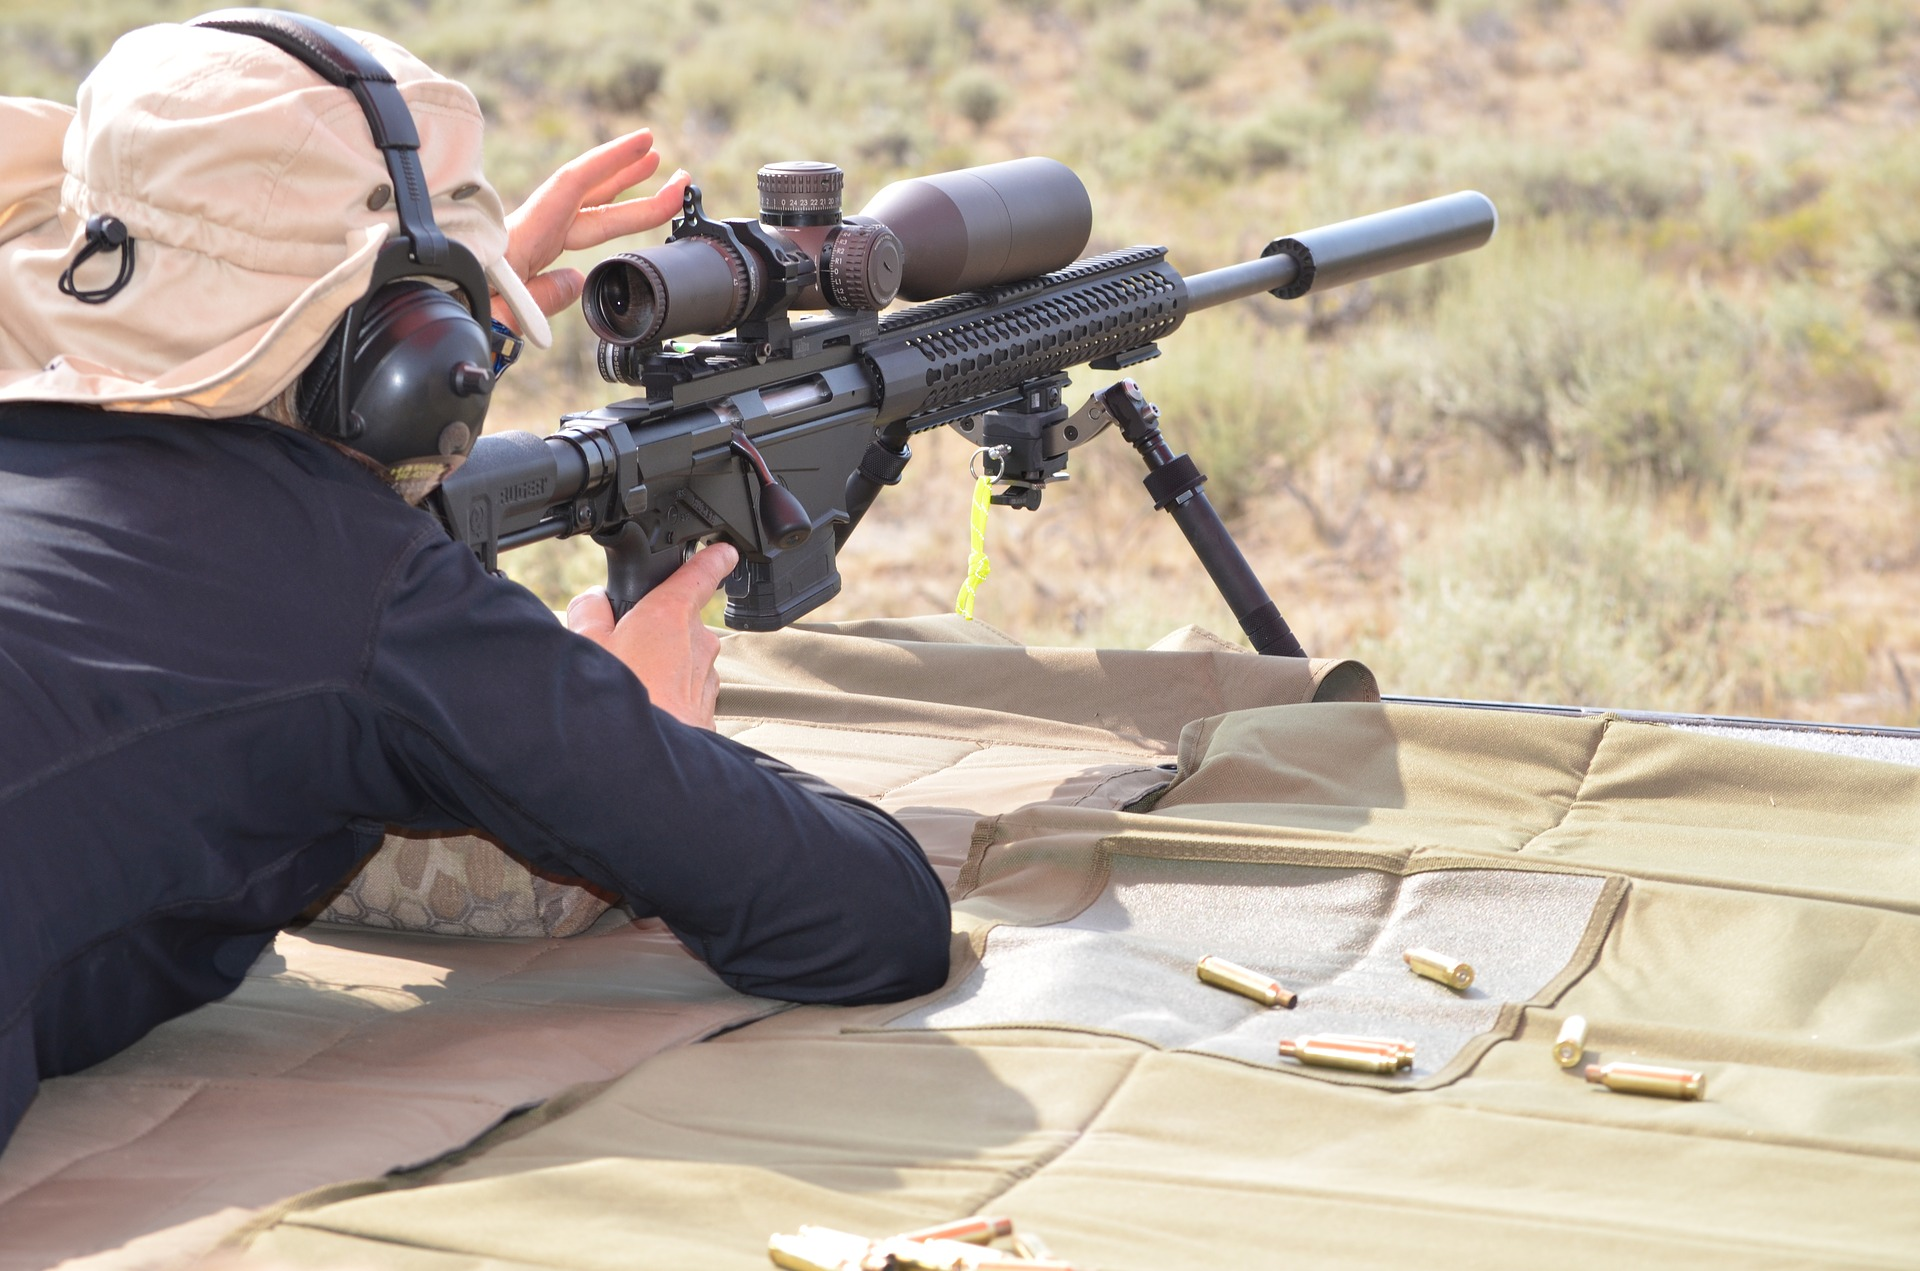 Try this rifle sight-in trick for point-and-shoot hits